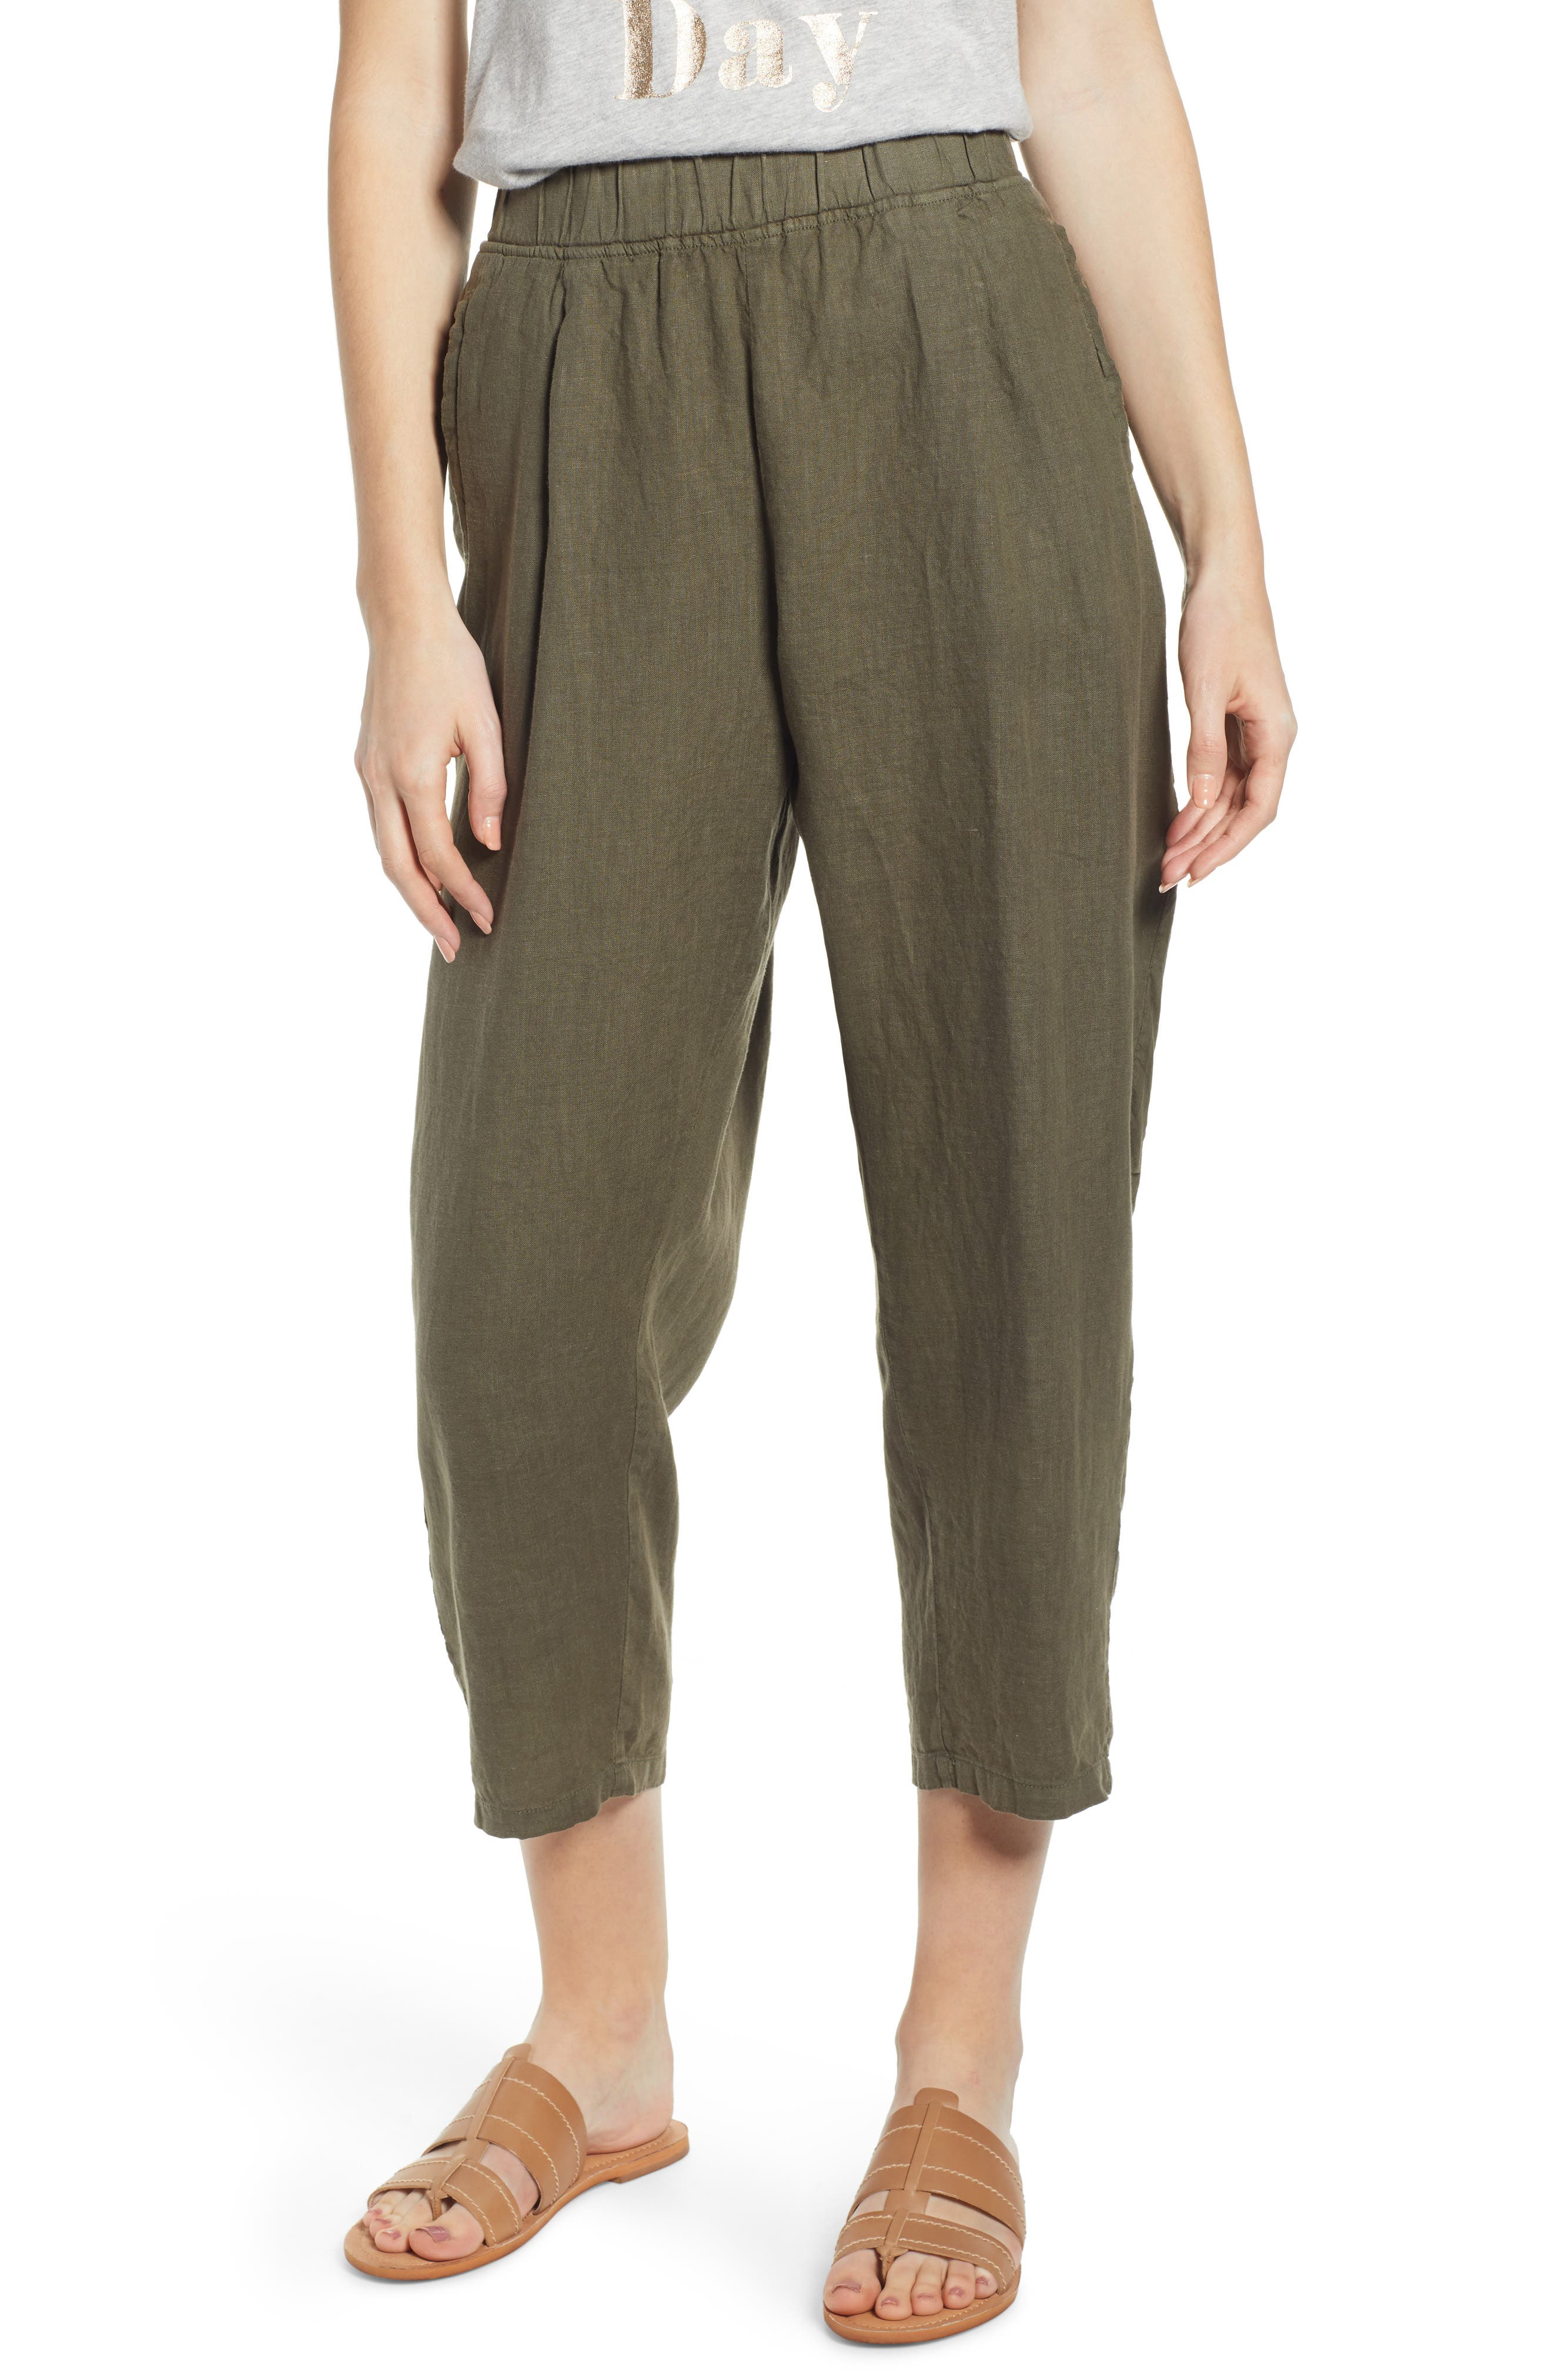 Nike Women's Cotton Blend Khaki Tan Athletic Cropped Pants Size S 4-6 Clothing, Shoes & Accessories Activewear Bottoms